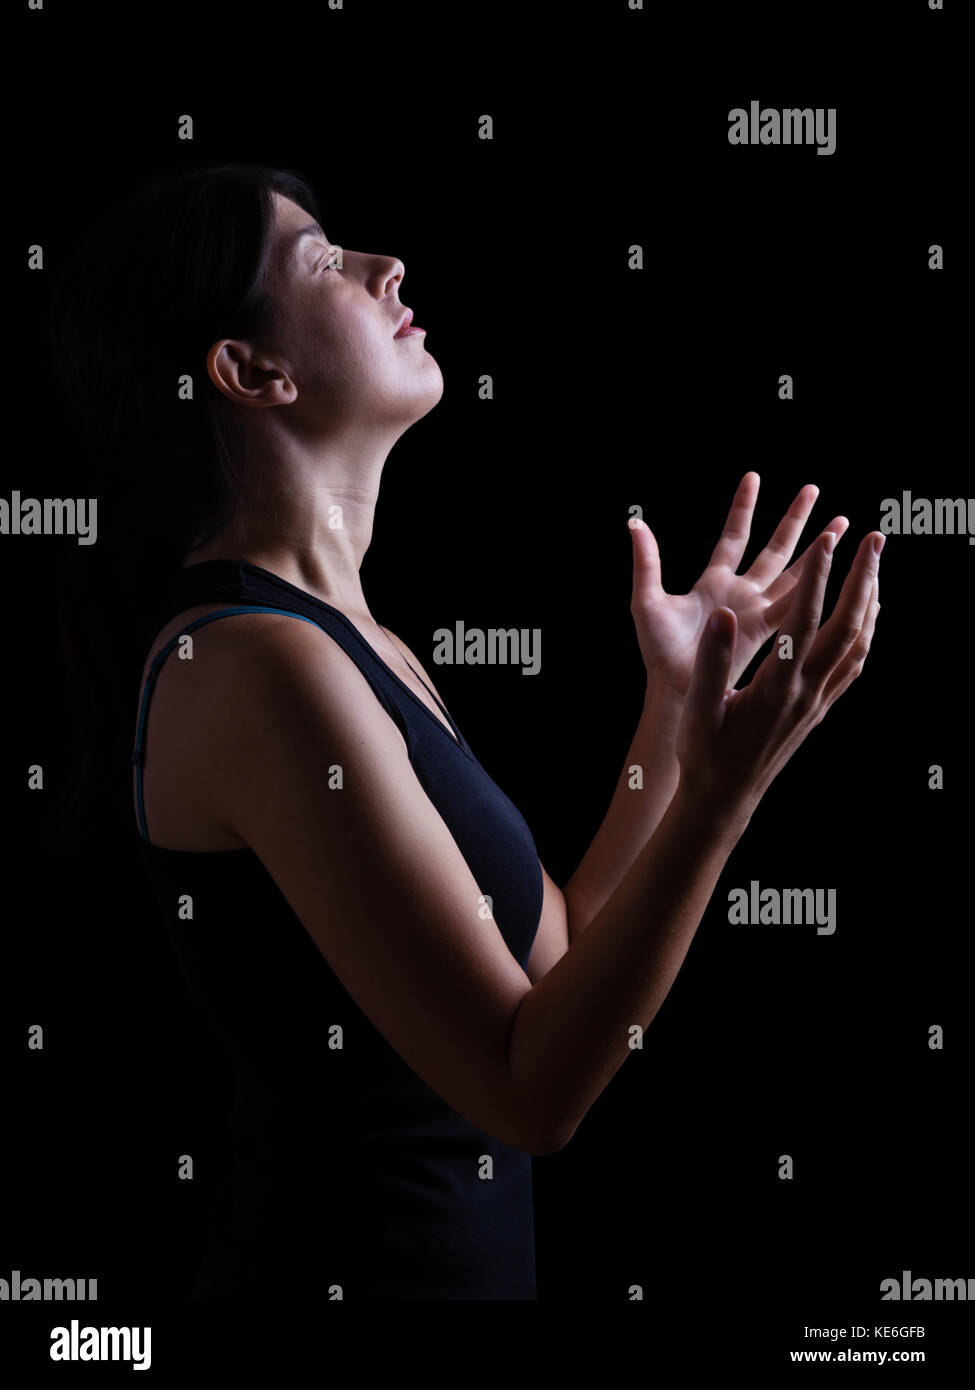 Low key of a faithful woman praying and feeling the presence or being touched by god. Arms outstretched in worship, - Stock Image